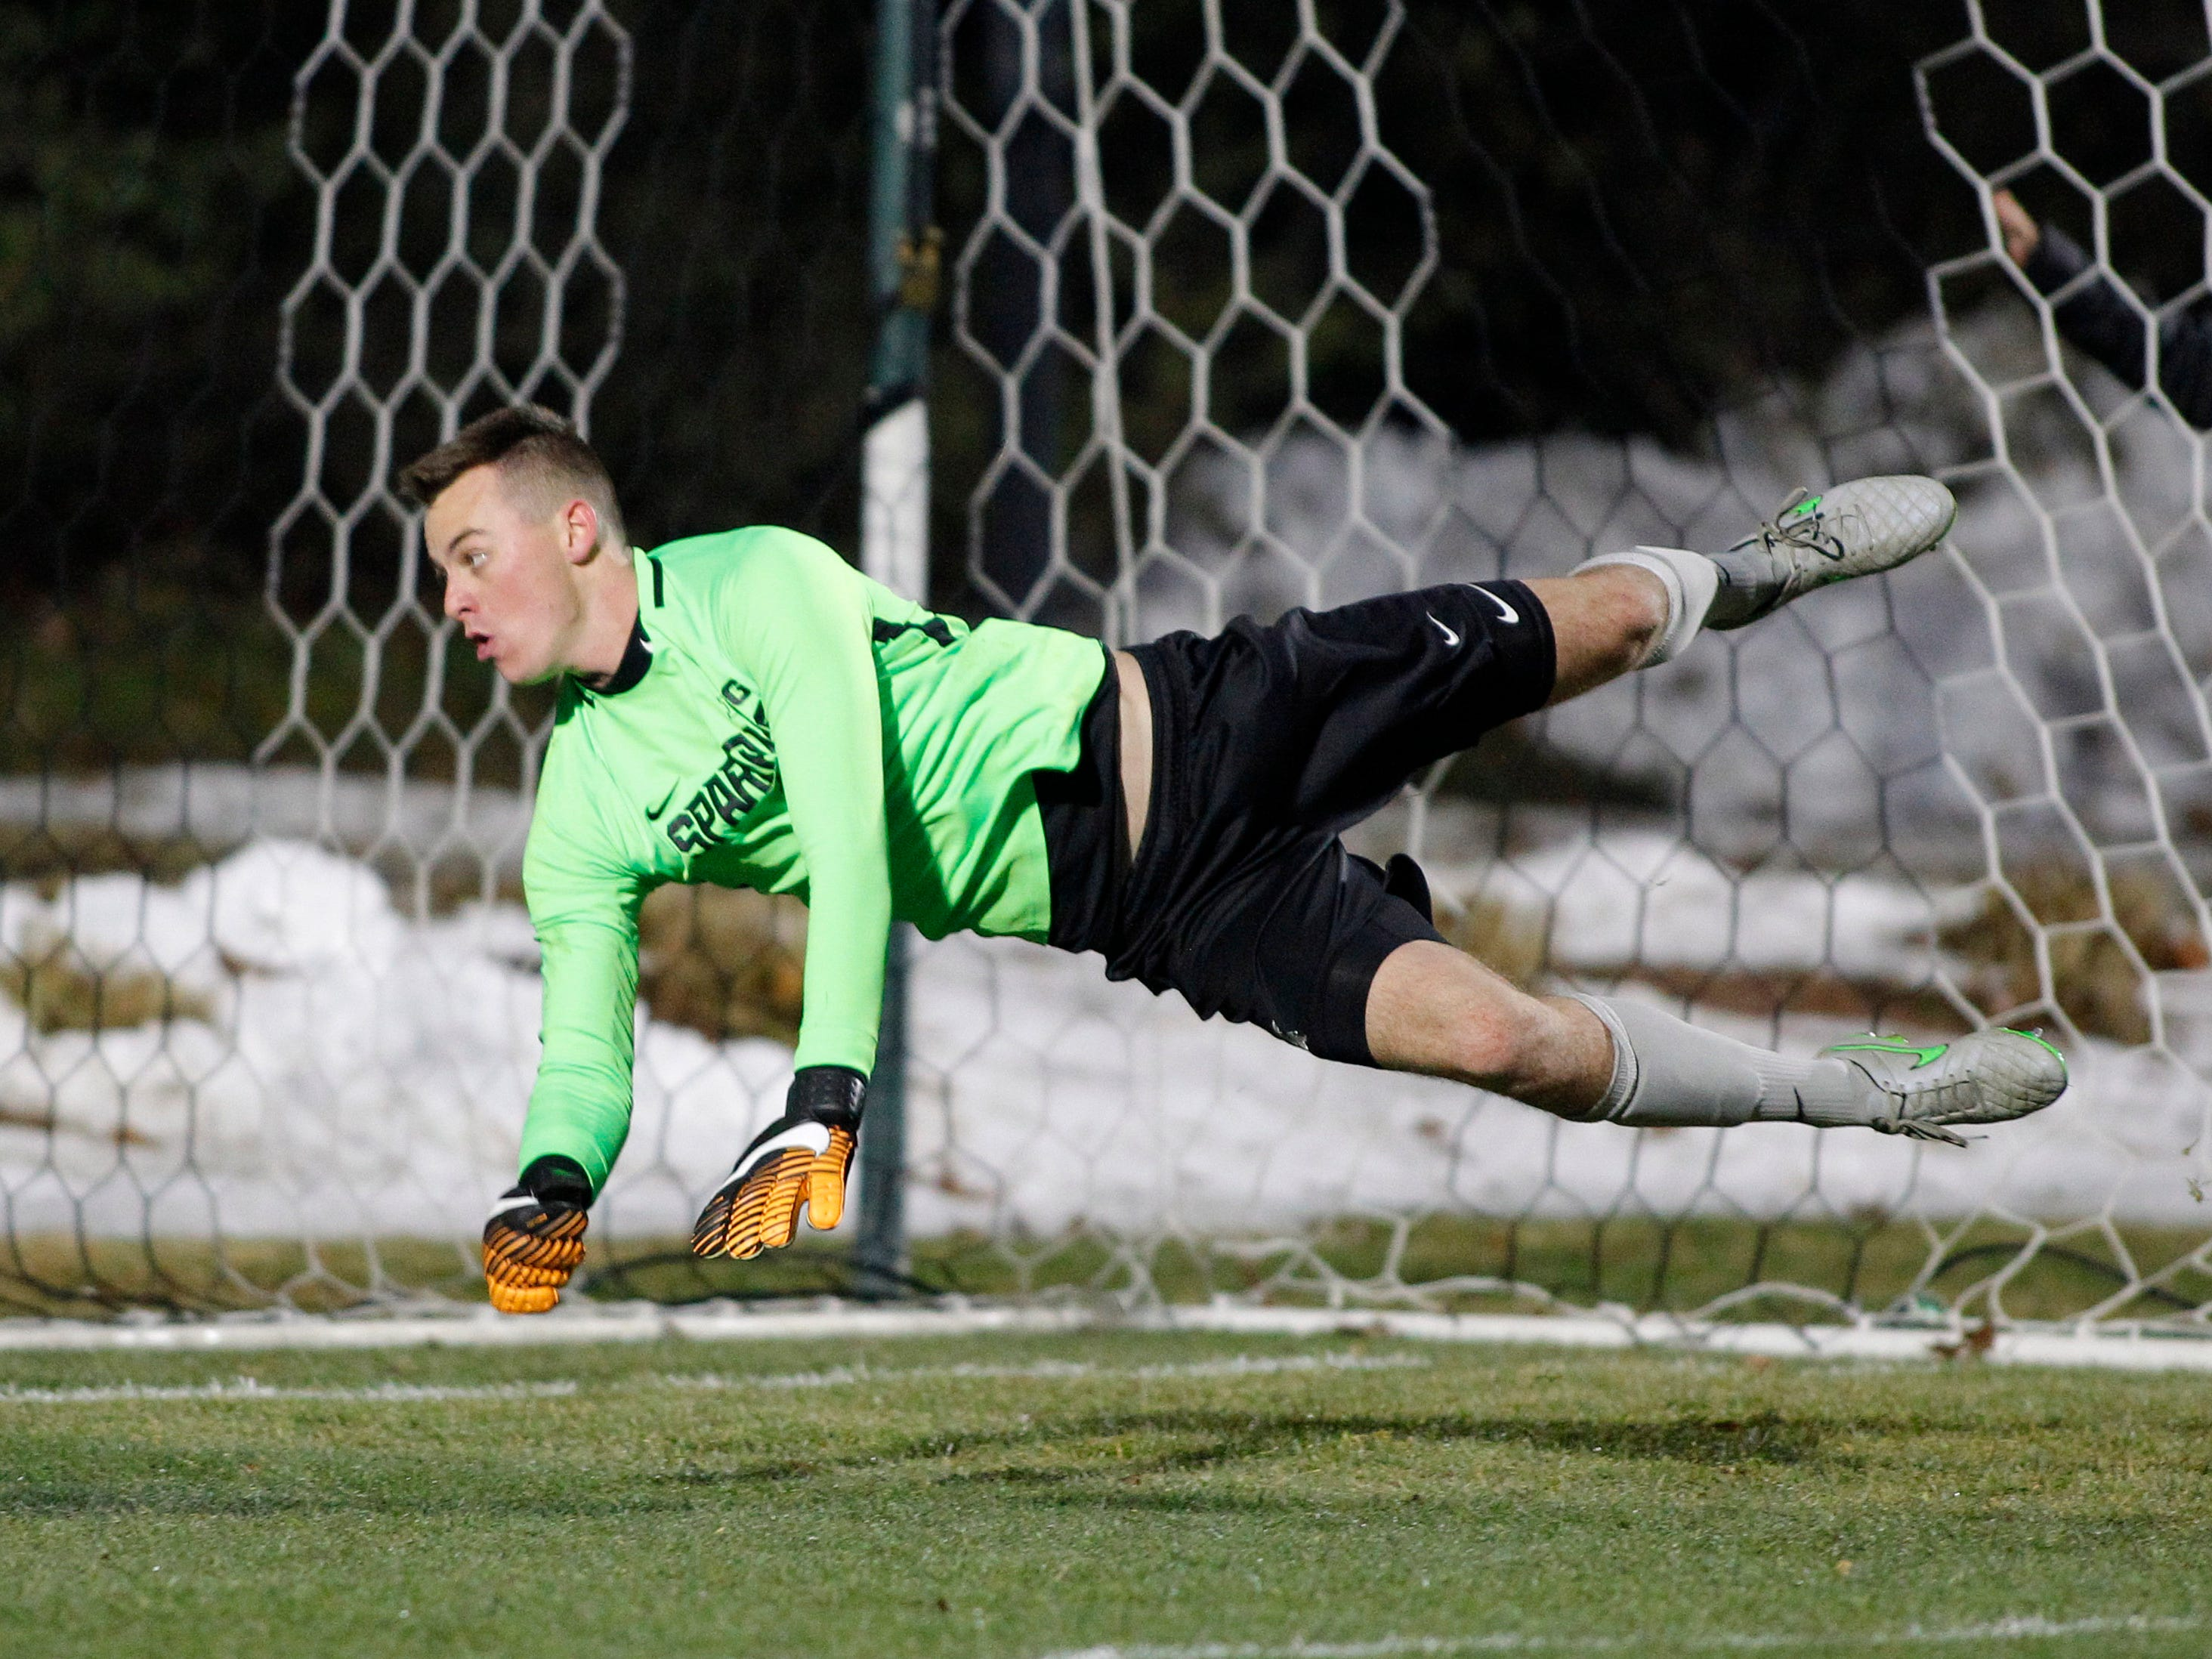 Michigan State goalkeeper Jimmy Hague dives for the ball against James Madison, Saturday, Dec. 1, 2018, in East Lansing, Mich.